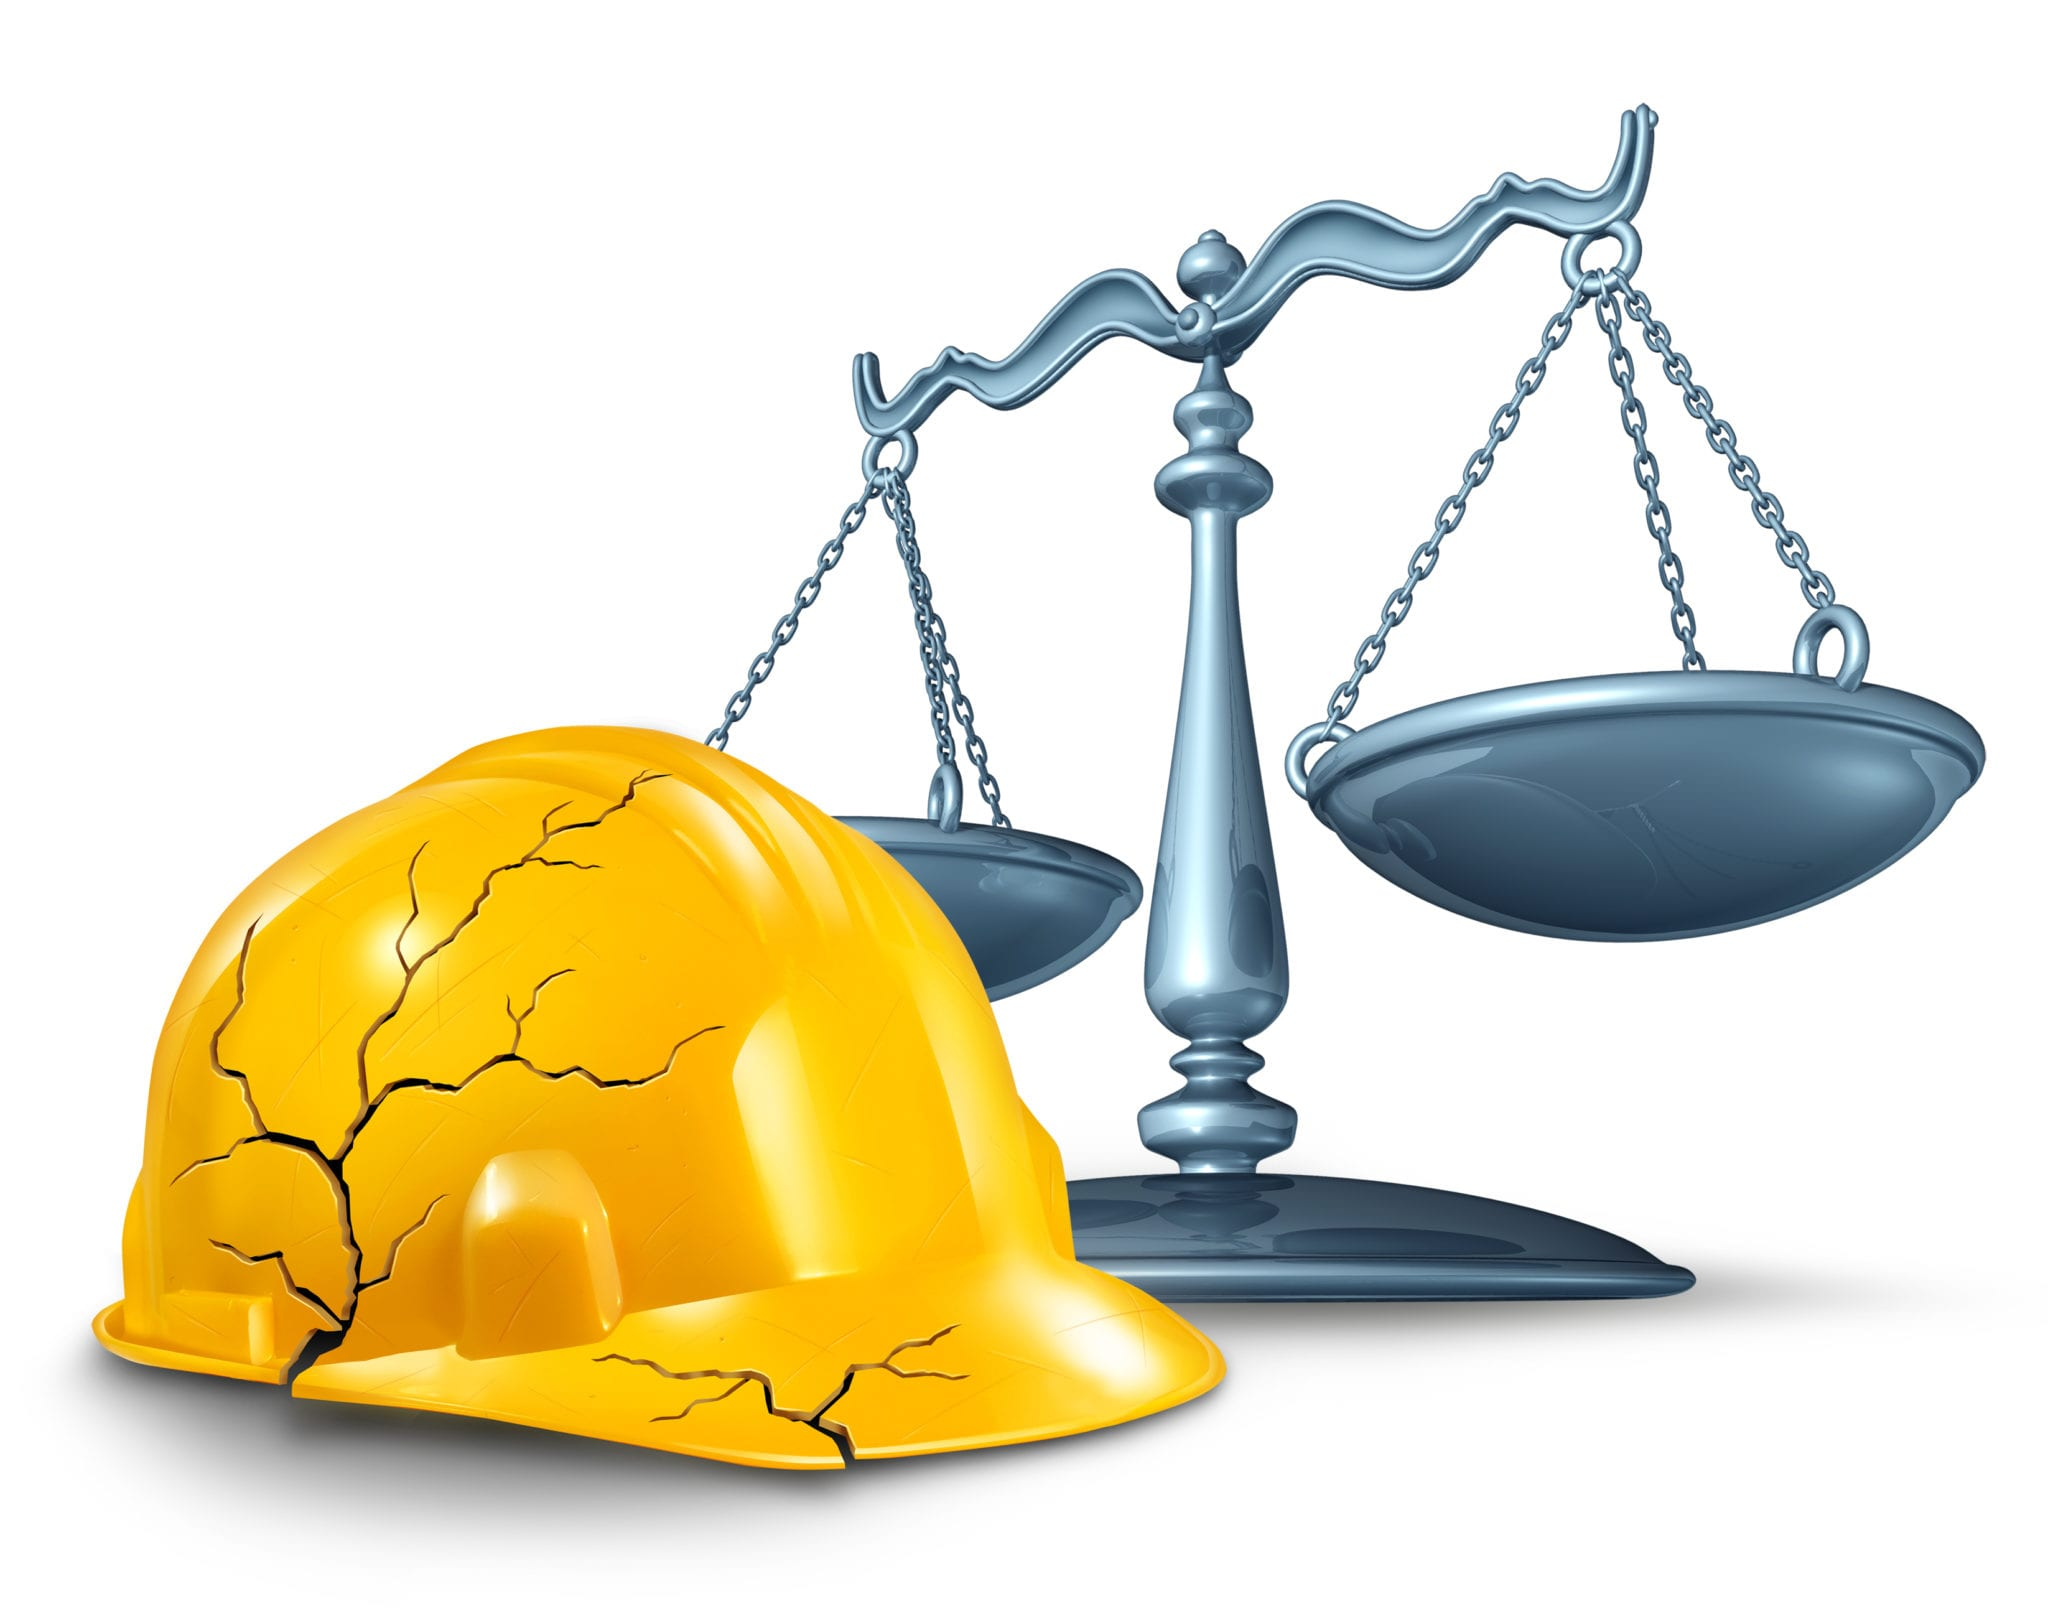 hard hat and scale